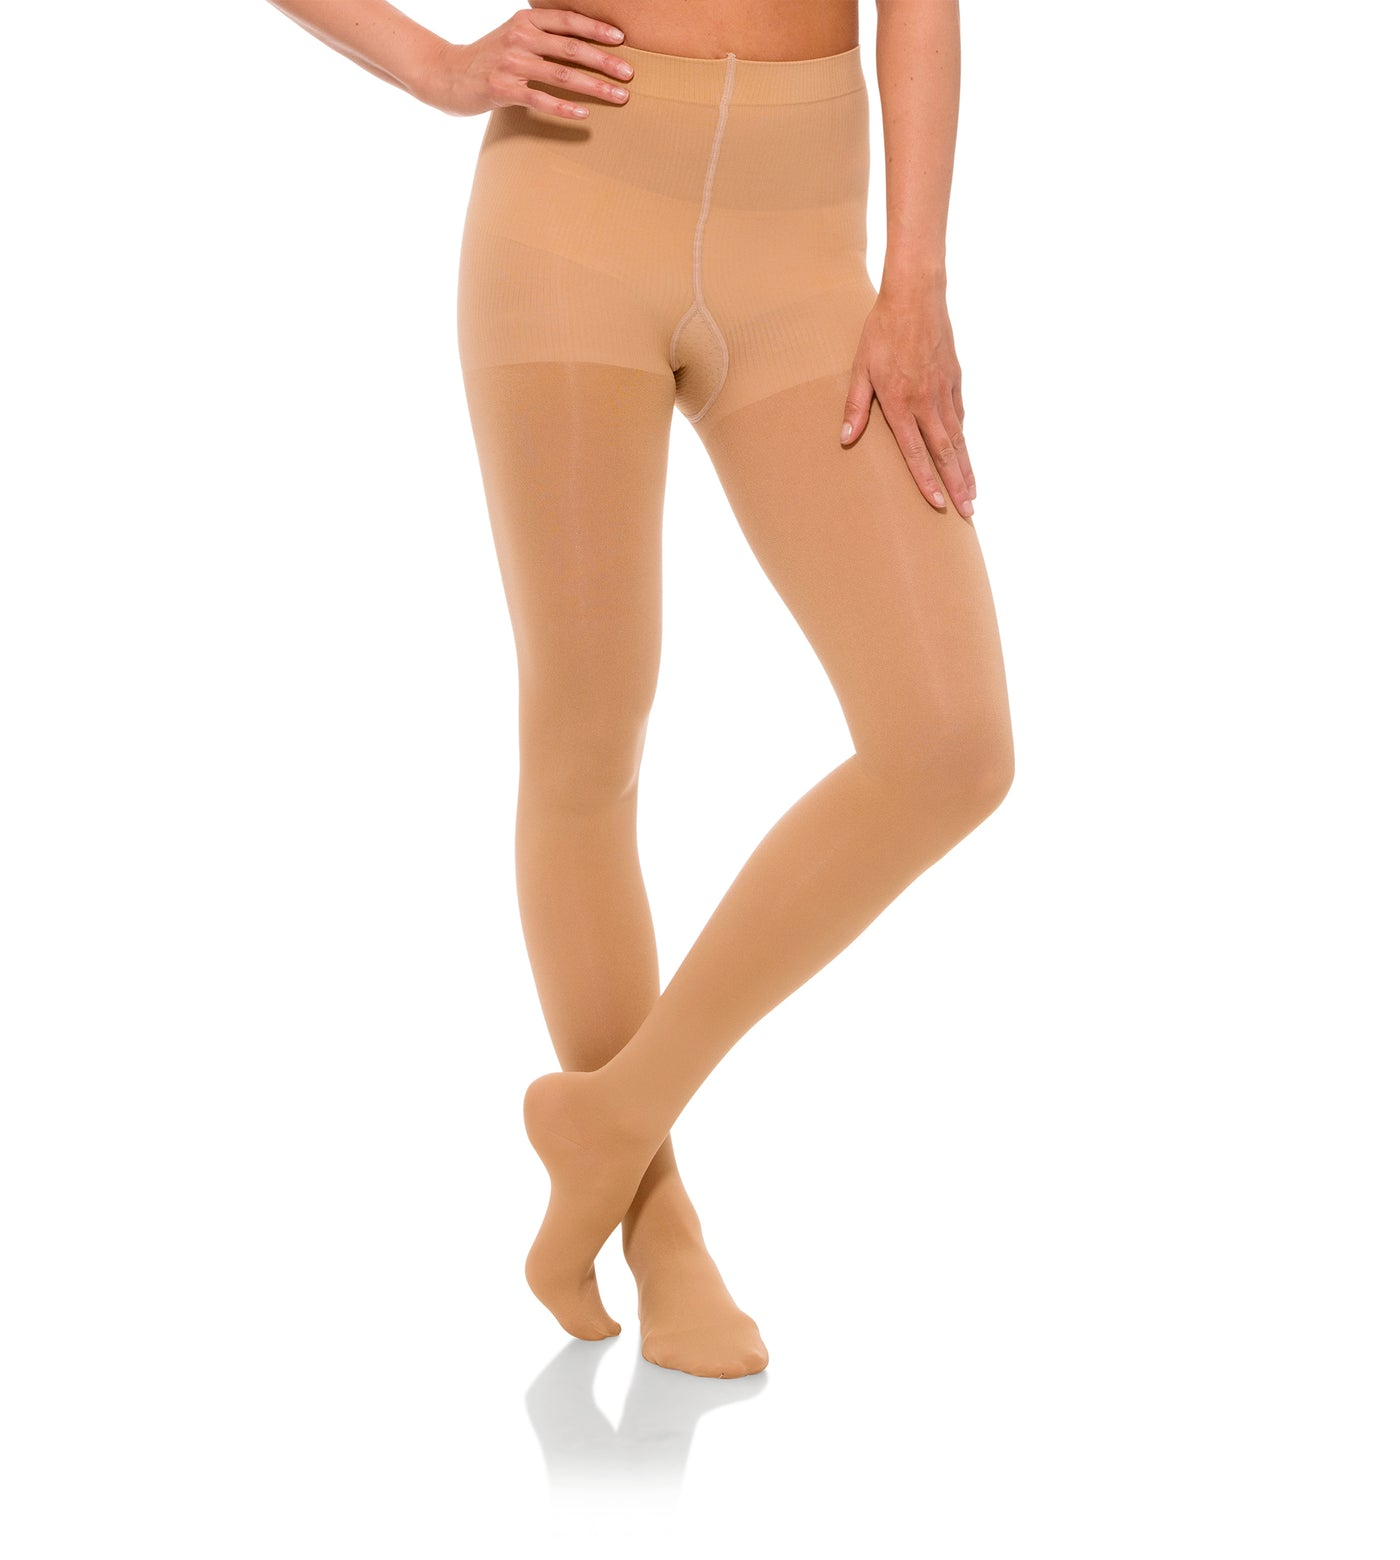 Women Compression Pantyhose